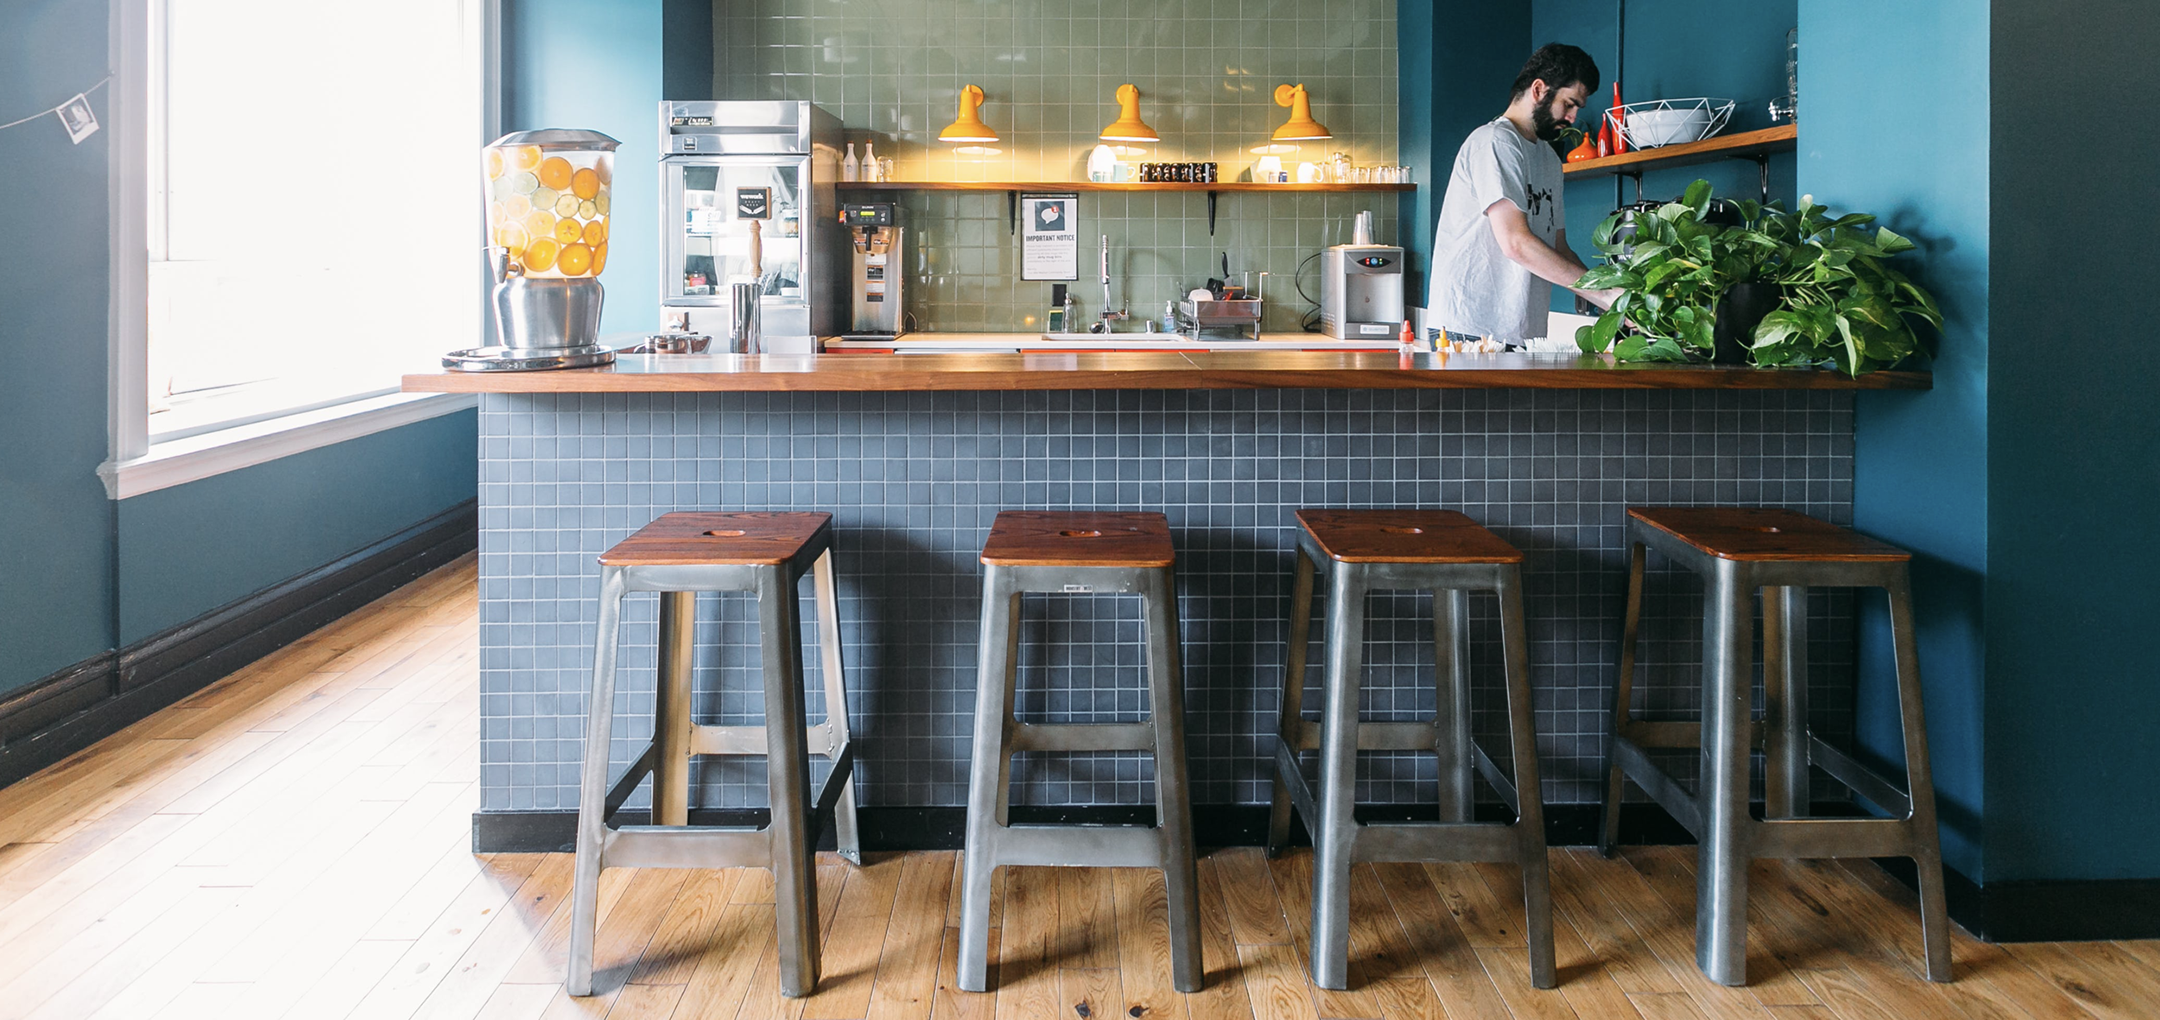 Kitchenette and coffee bar.